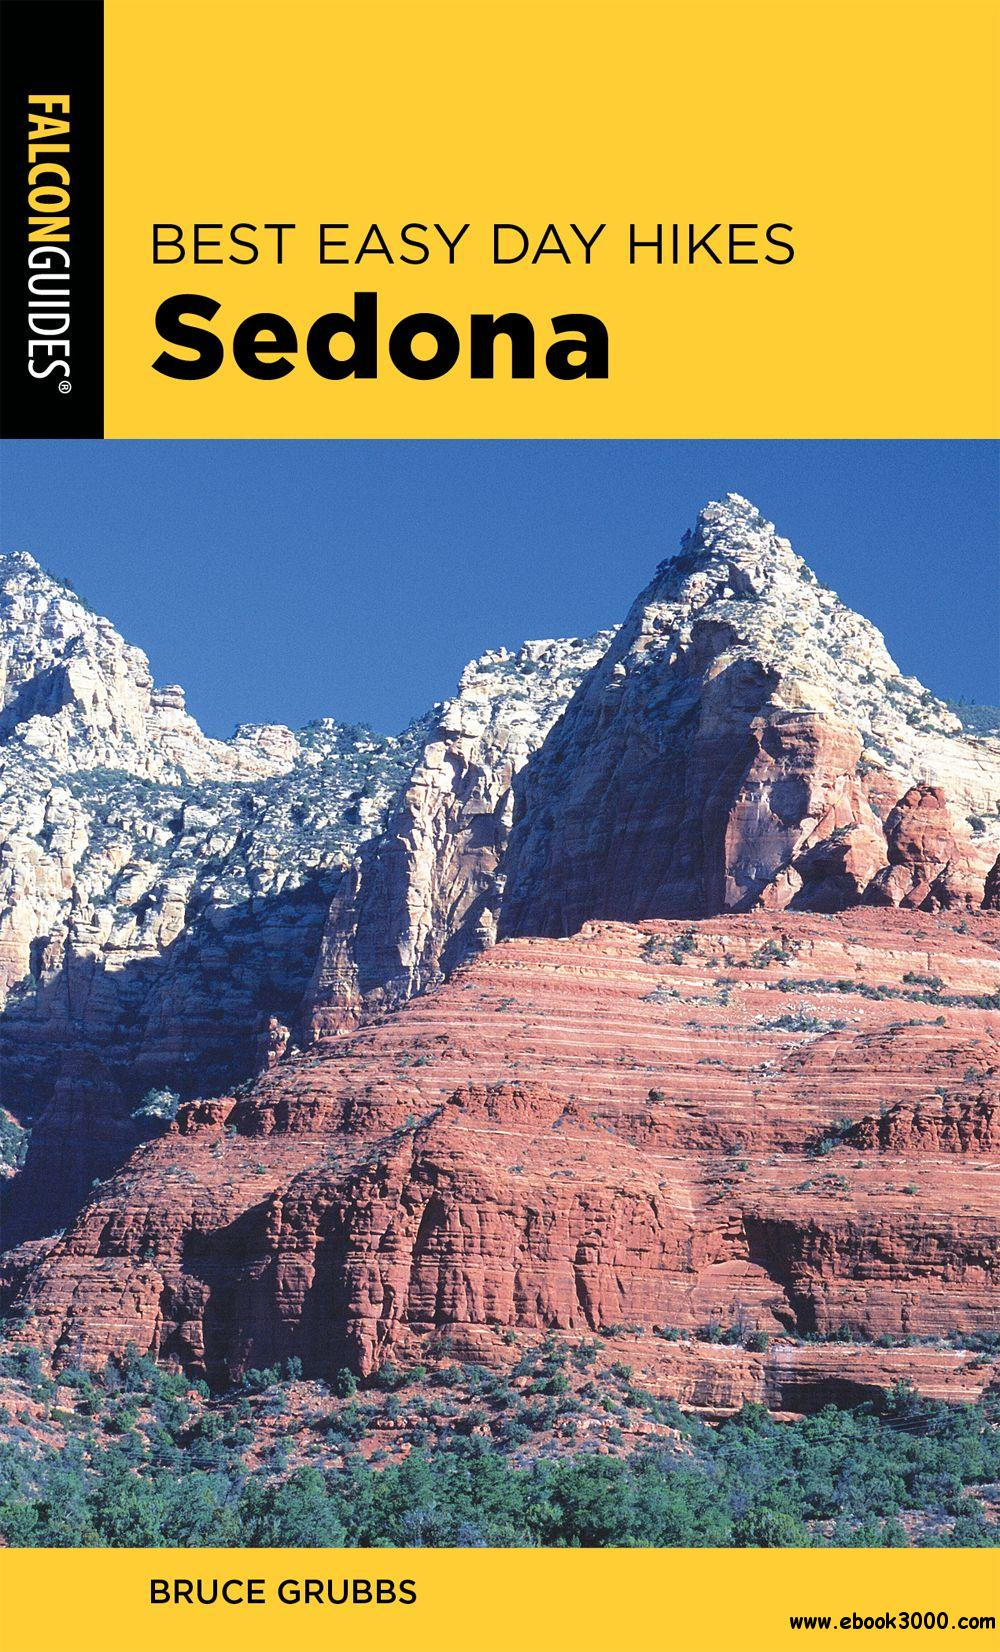 Best Easy Day Hikes Sedona (Best Easy Day Hikes), 3rd Edition